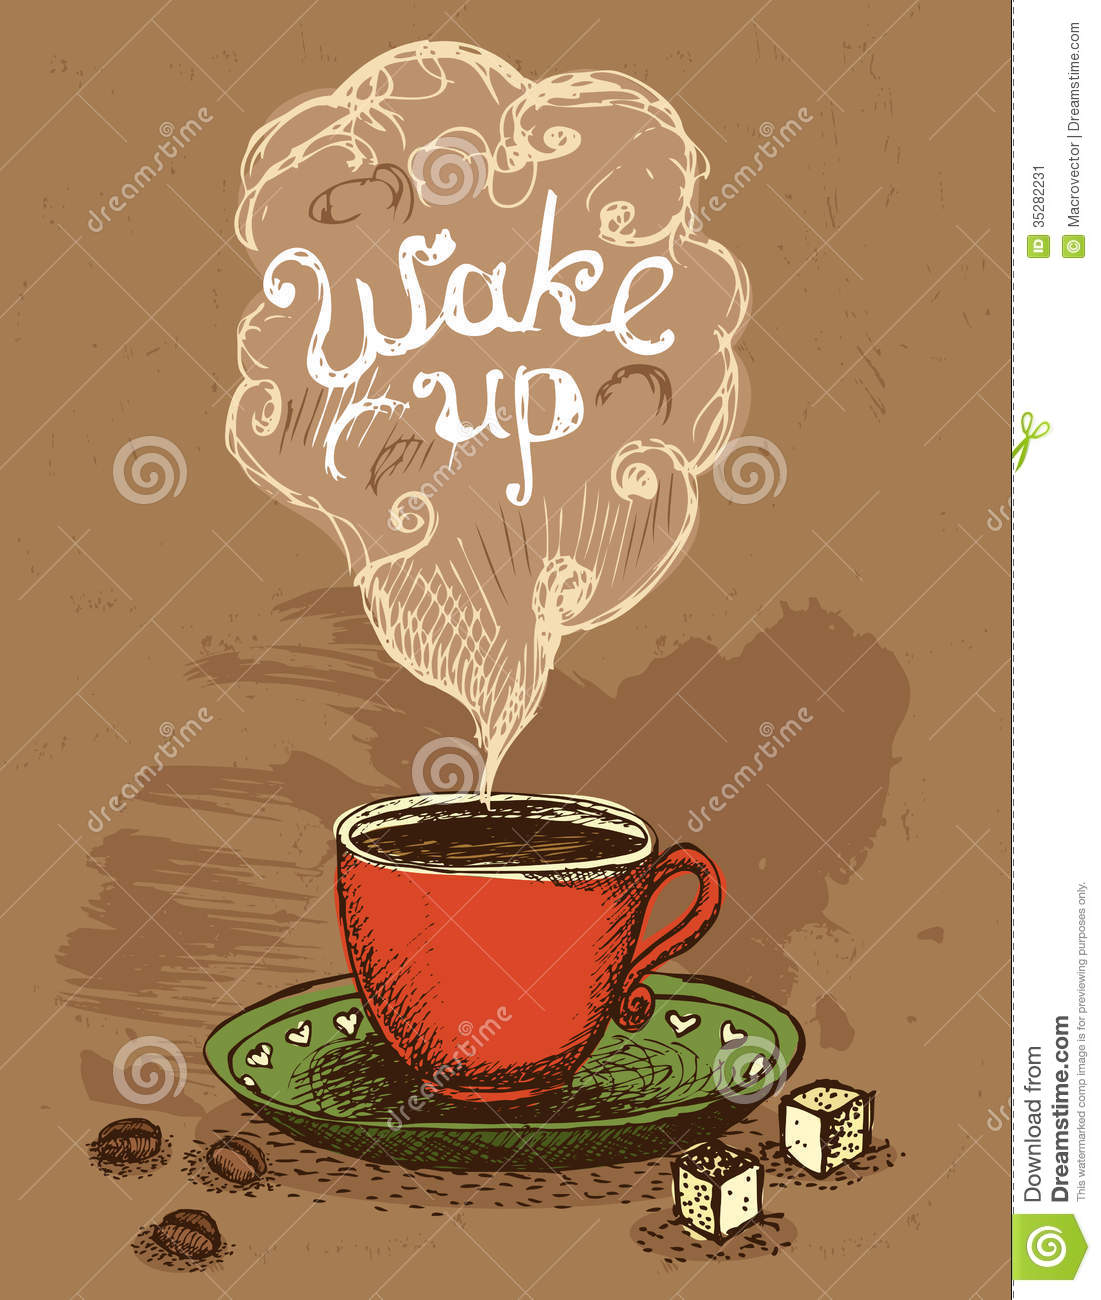 Fascinating Morning Cup Of Coffee Images Images - Best Image Engine ...